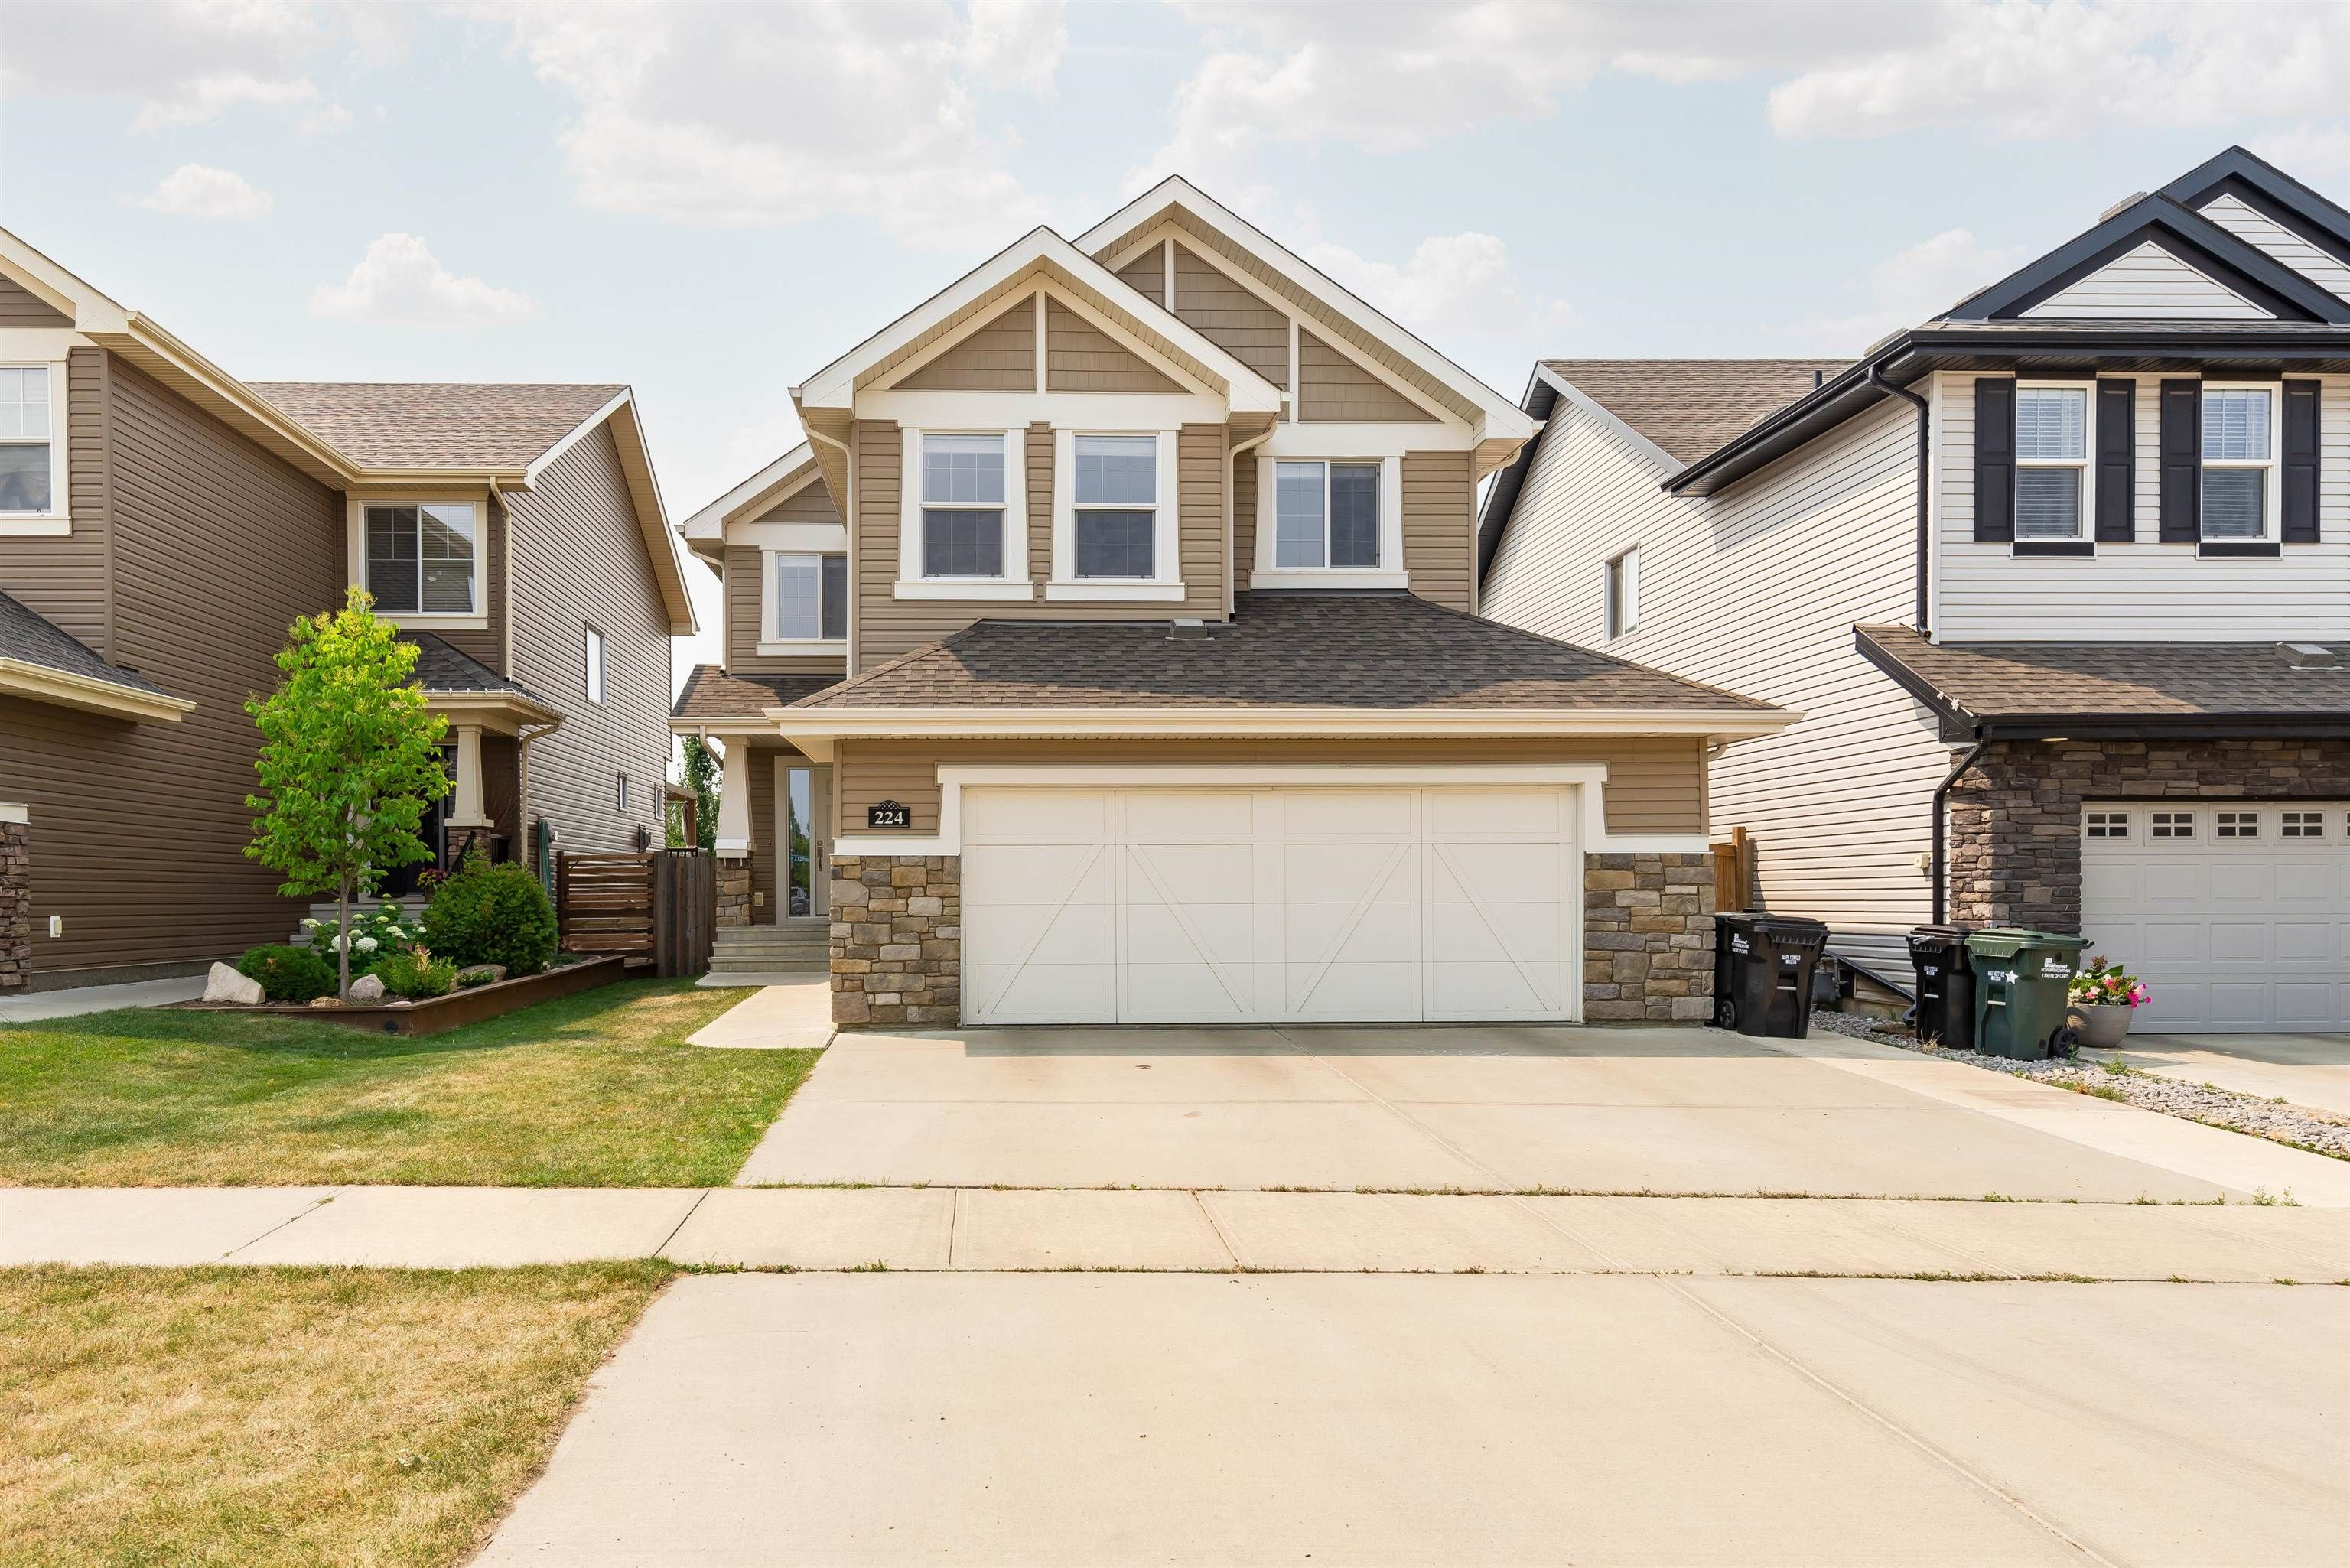 Main Photo: 224 CAMPBELL Point: Sherwood Park House for sale : MLS®# E4264225